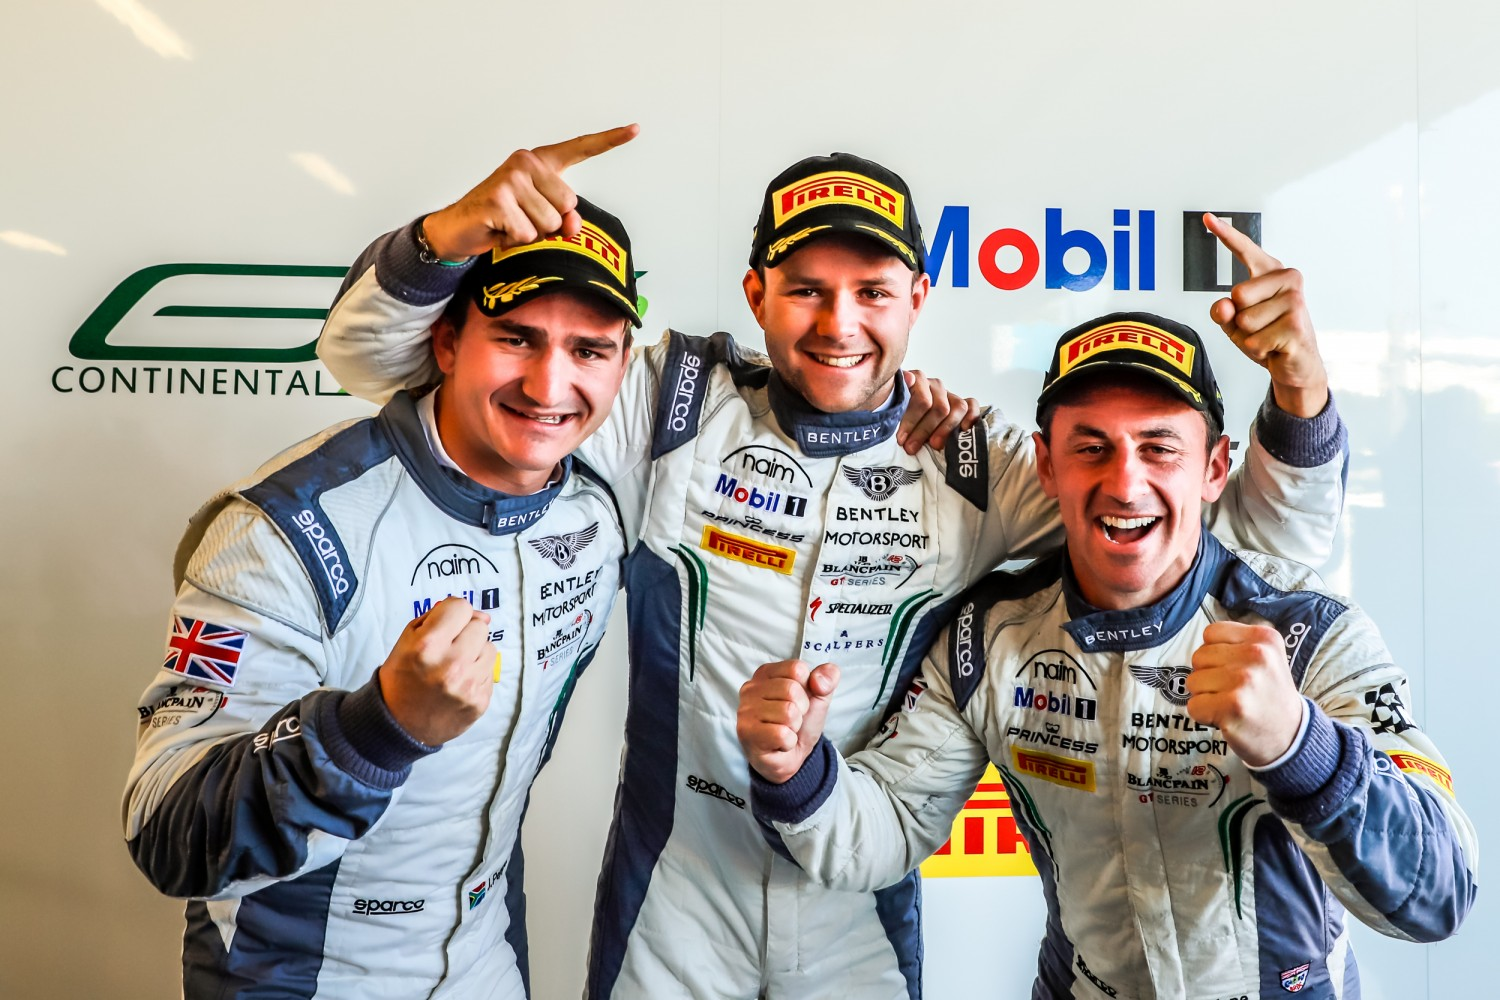 Bentley Team M-Sport snatches pole in ultra-close Circuit Paul Ricard 1000kms qualifying